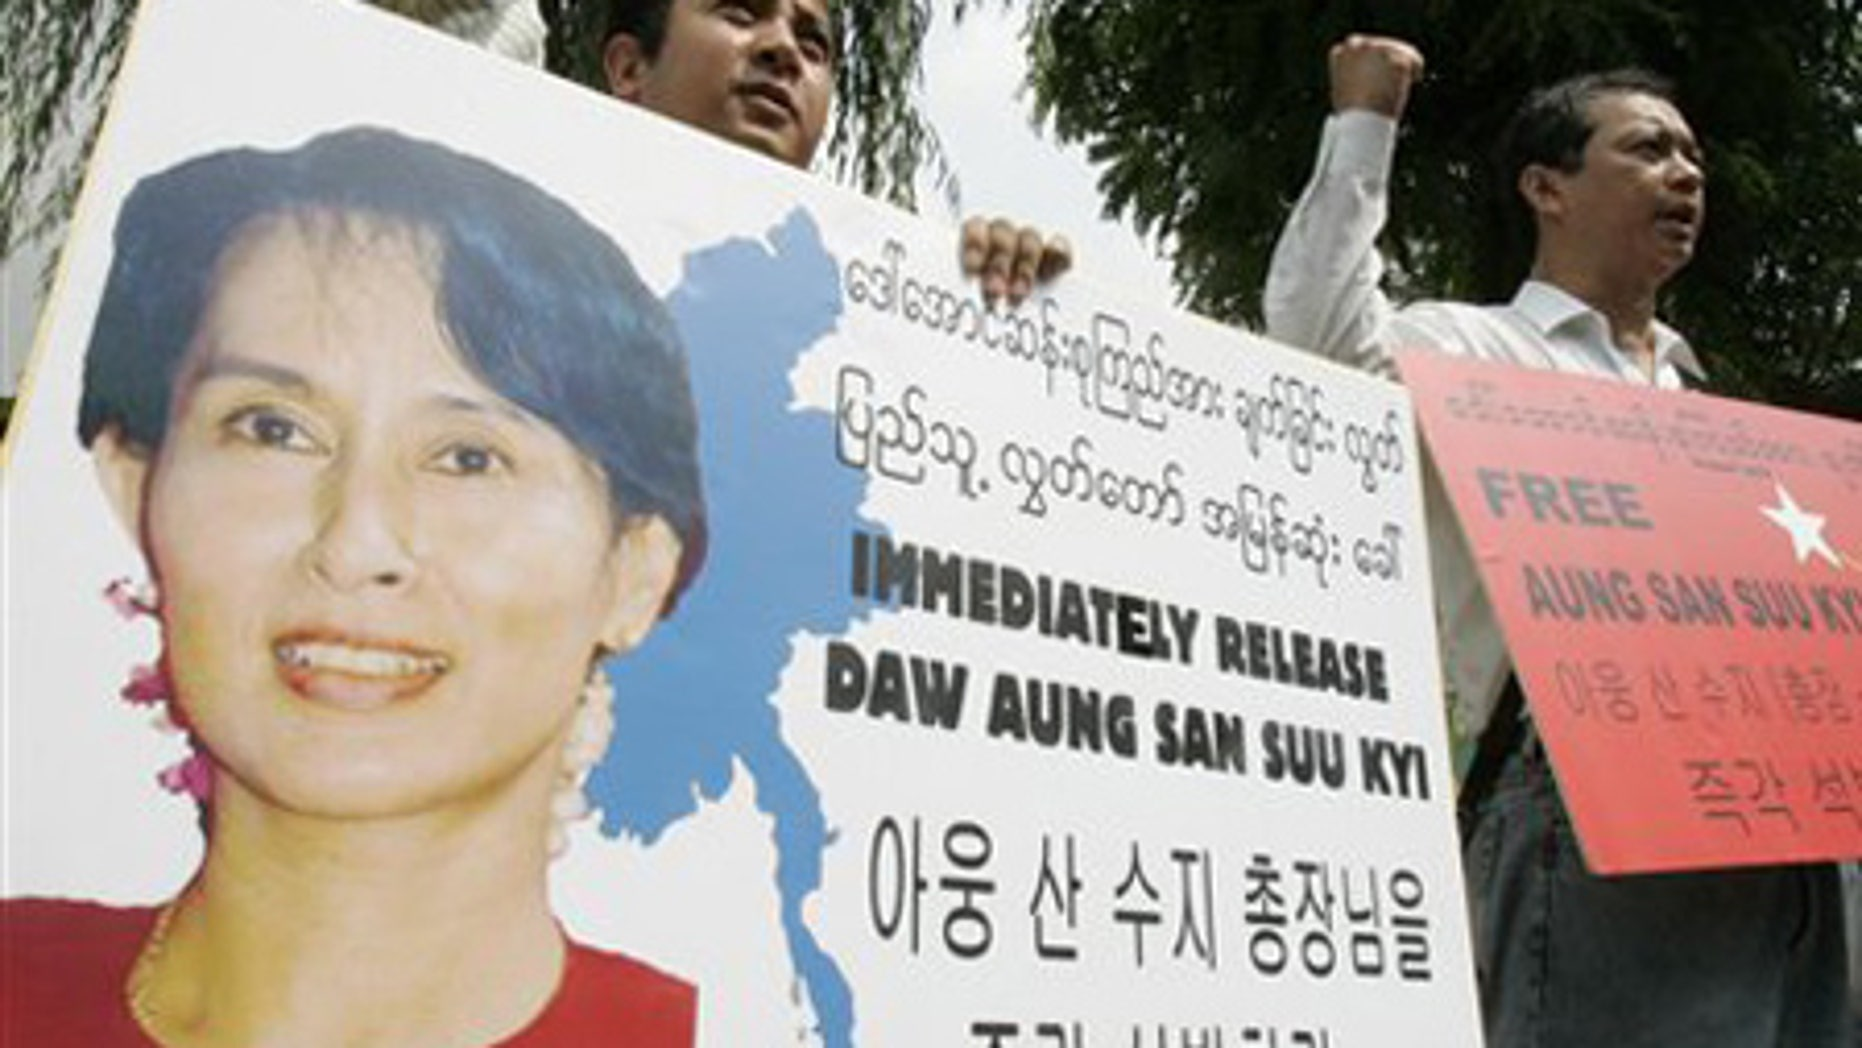 July 31: Burma activists shout slogans during a rally demanding the immediate release of pro-democracy leader Aung San Suu Kyi in Seoul, South Korea.